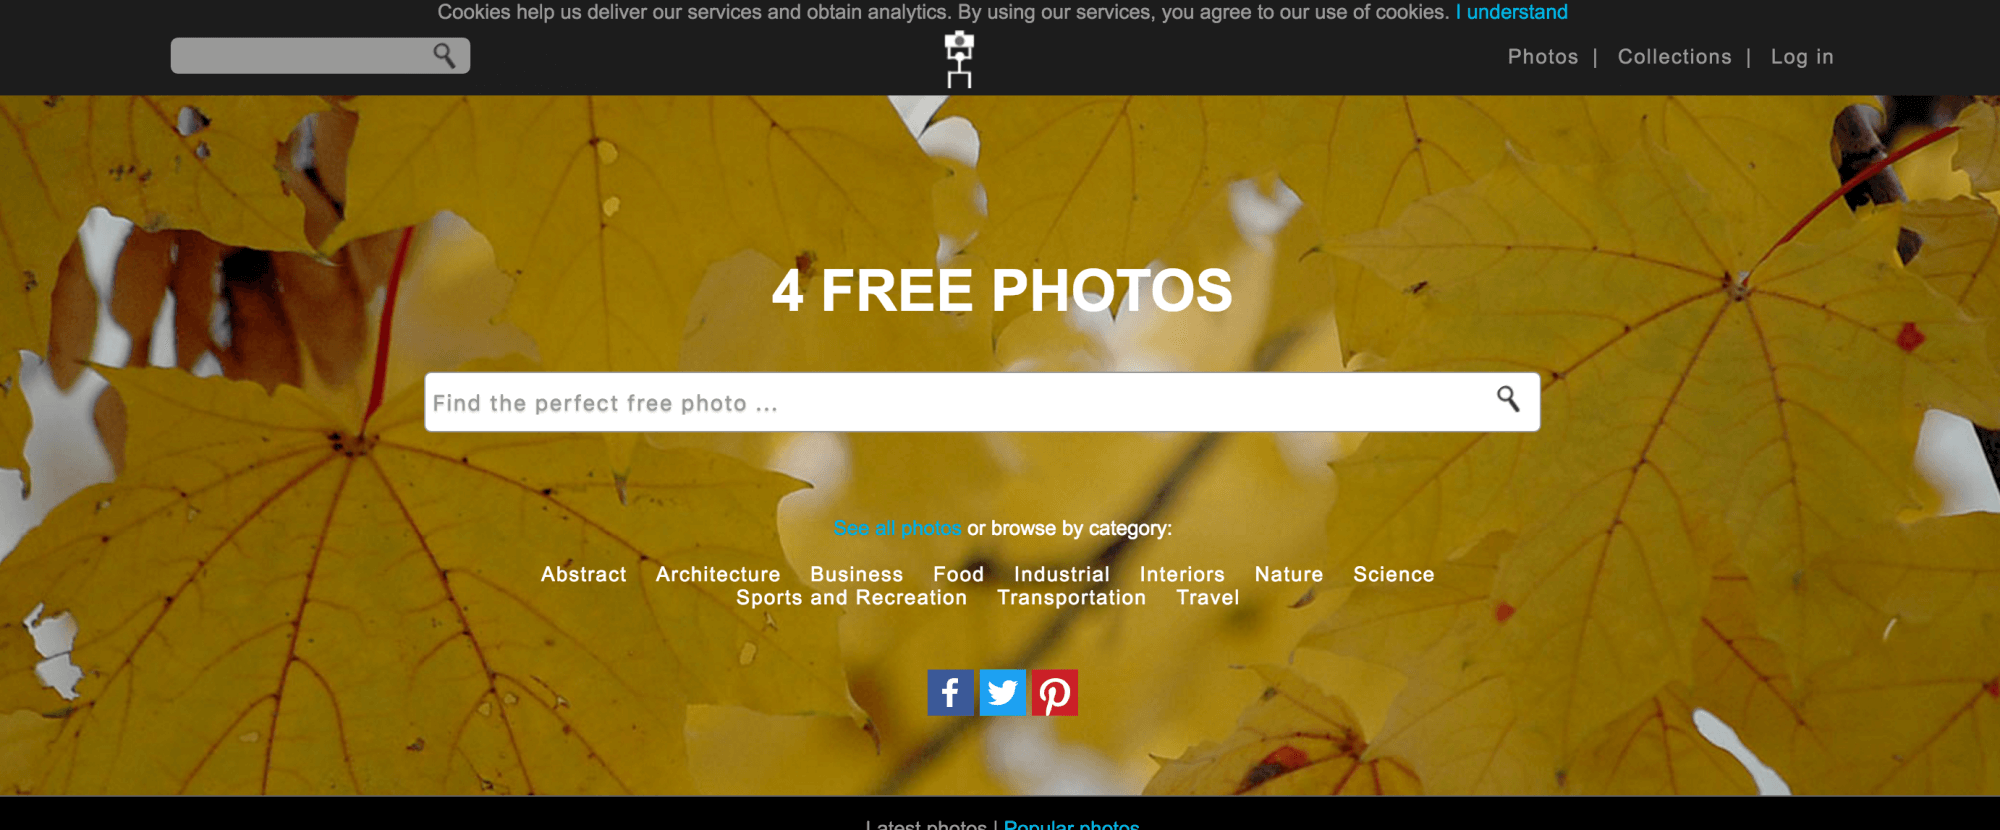 4-Free-Photos.png